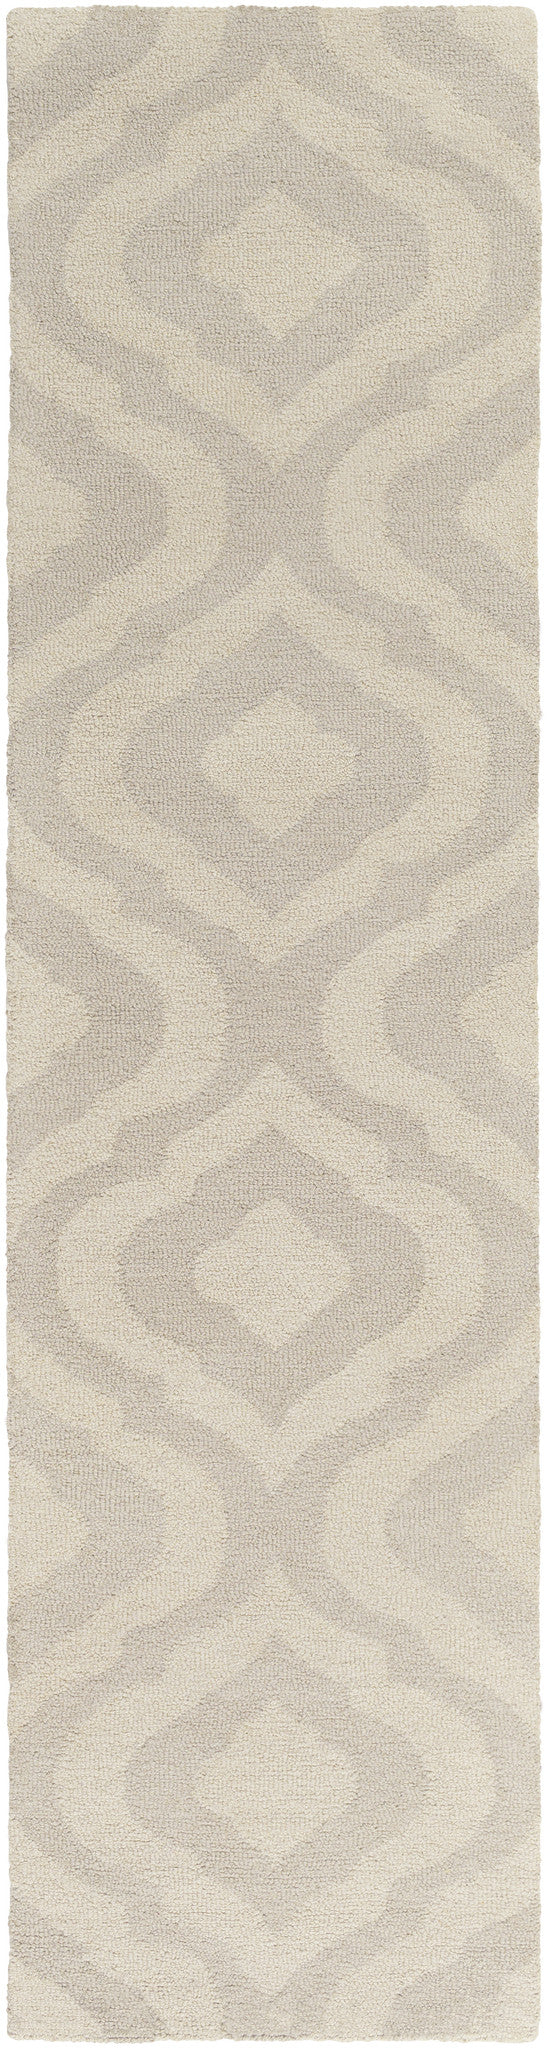 Artistic Weavers Impression Whitney AWIP2192 Area Rug